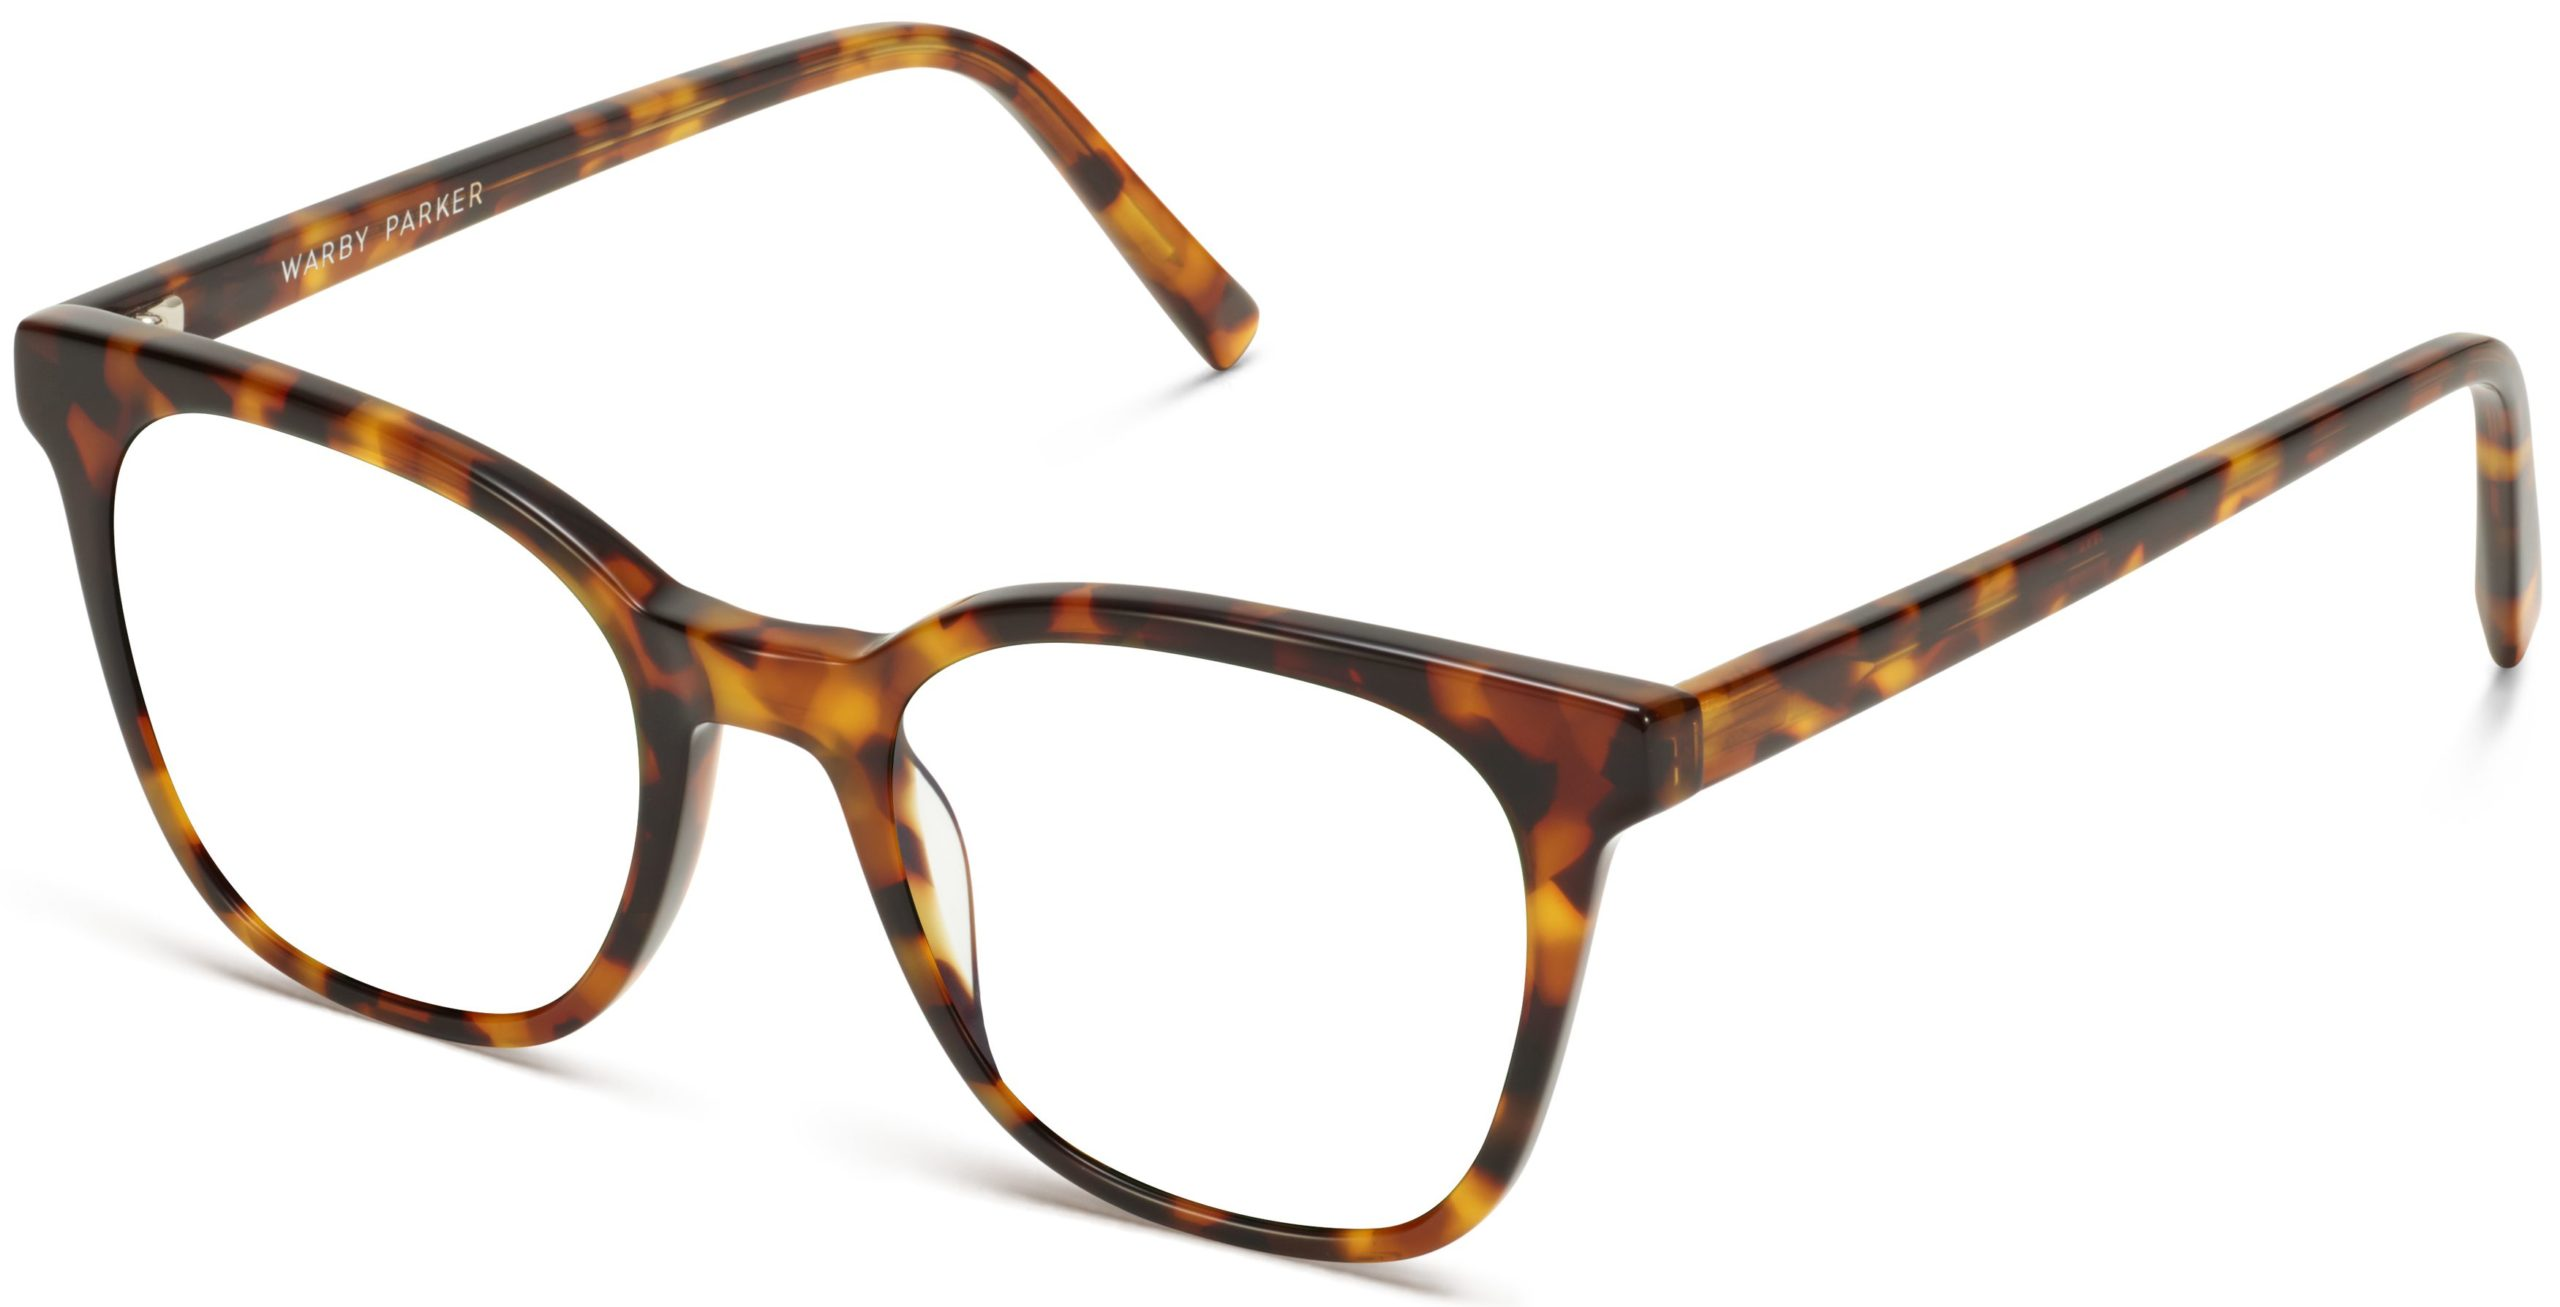 Angle View Image of Griffin Eyeglasses Collection, by Warby Parker Brand, in Acorn Tortoise Color